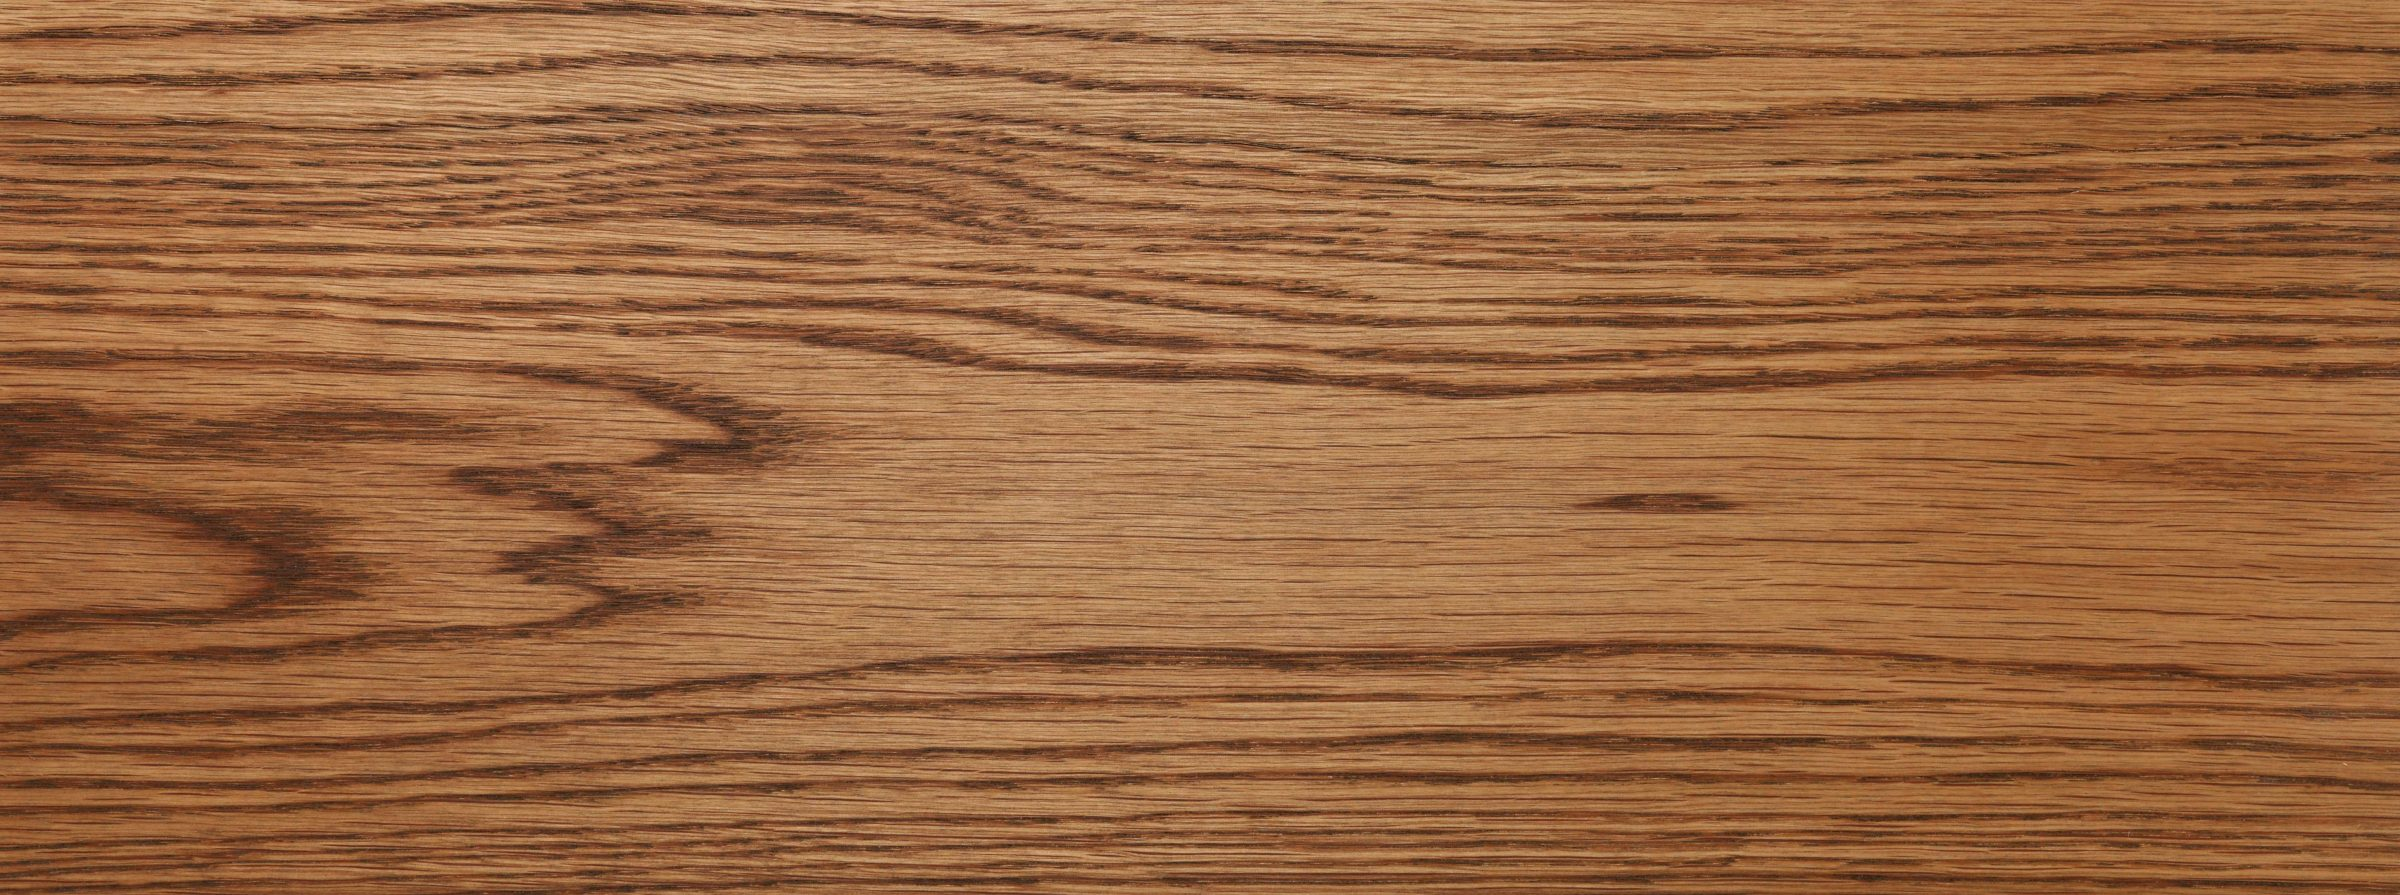 Oak 14mm engineered board, Castle Brown, 1sqm pack